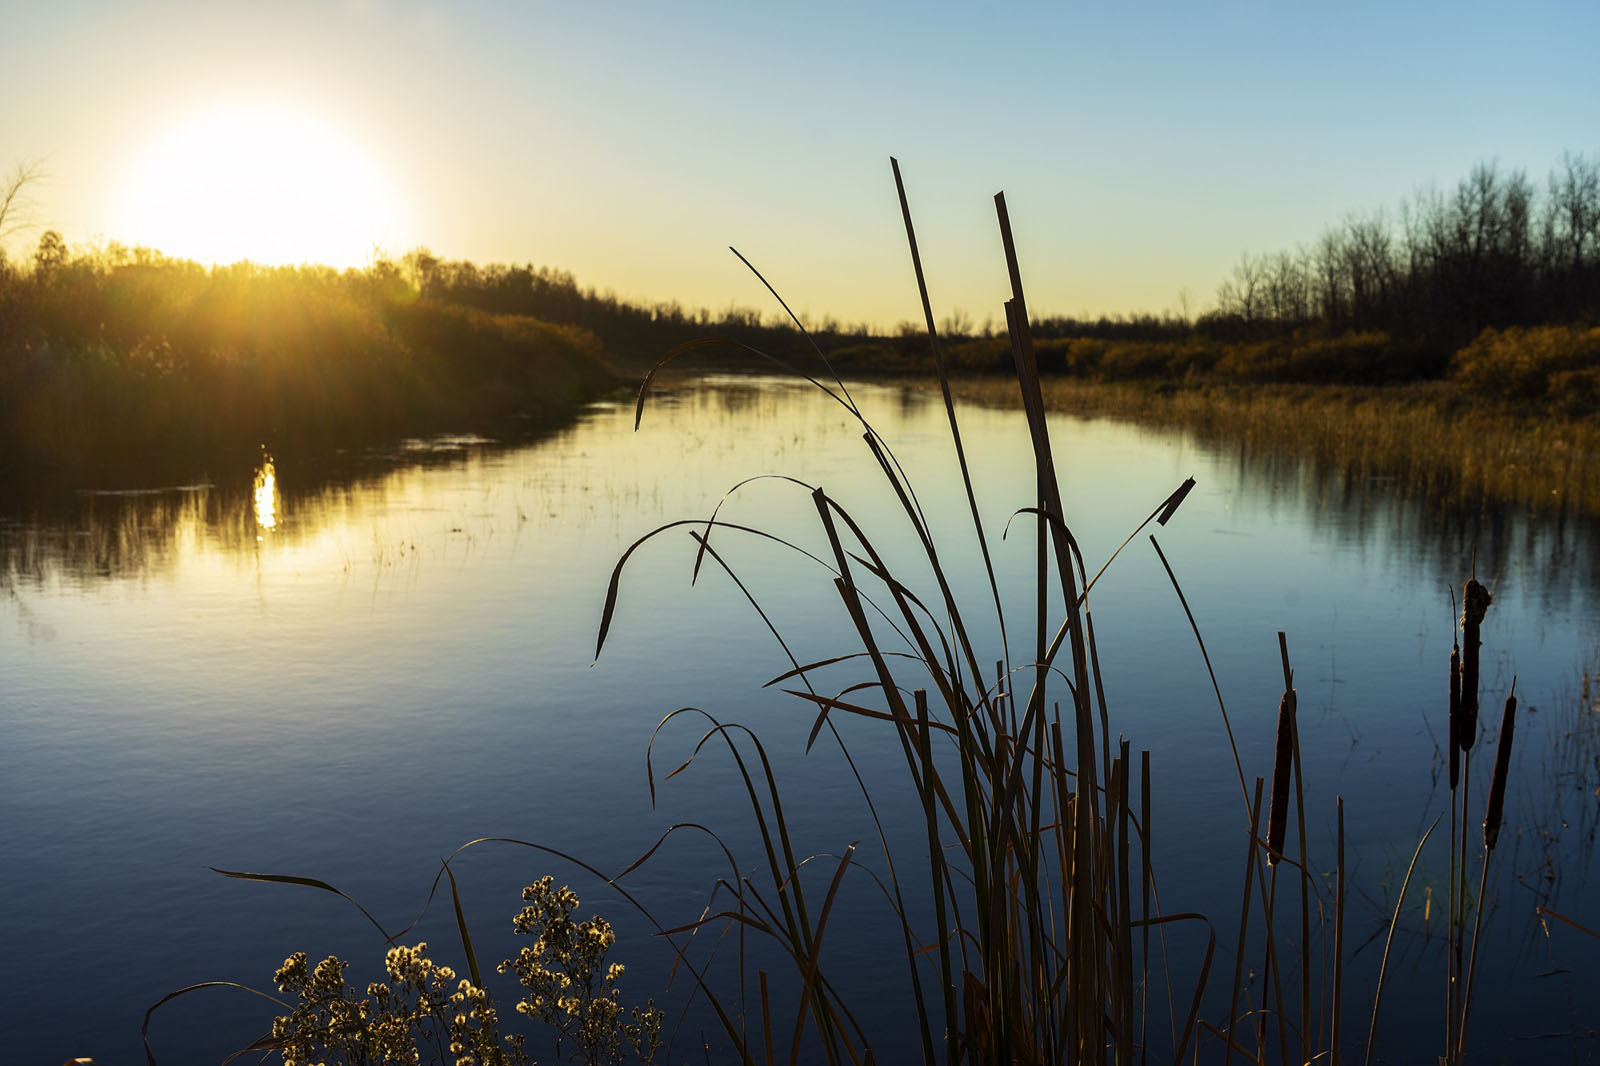 Pond with long grass in the foreground at sunset